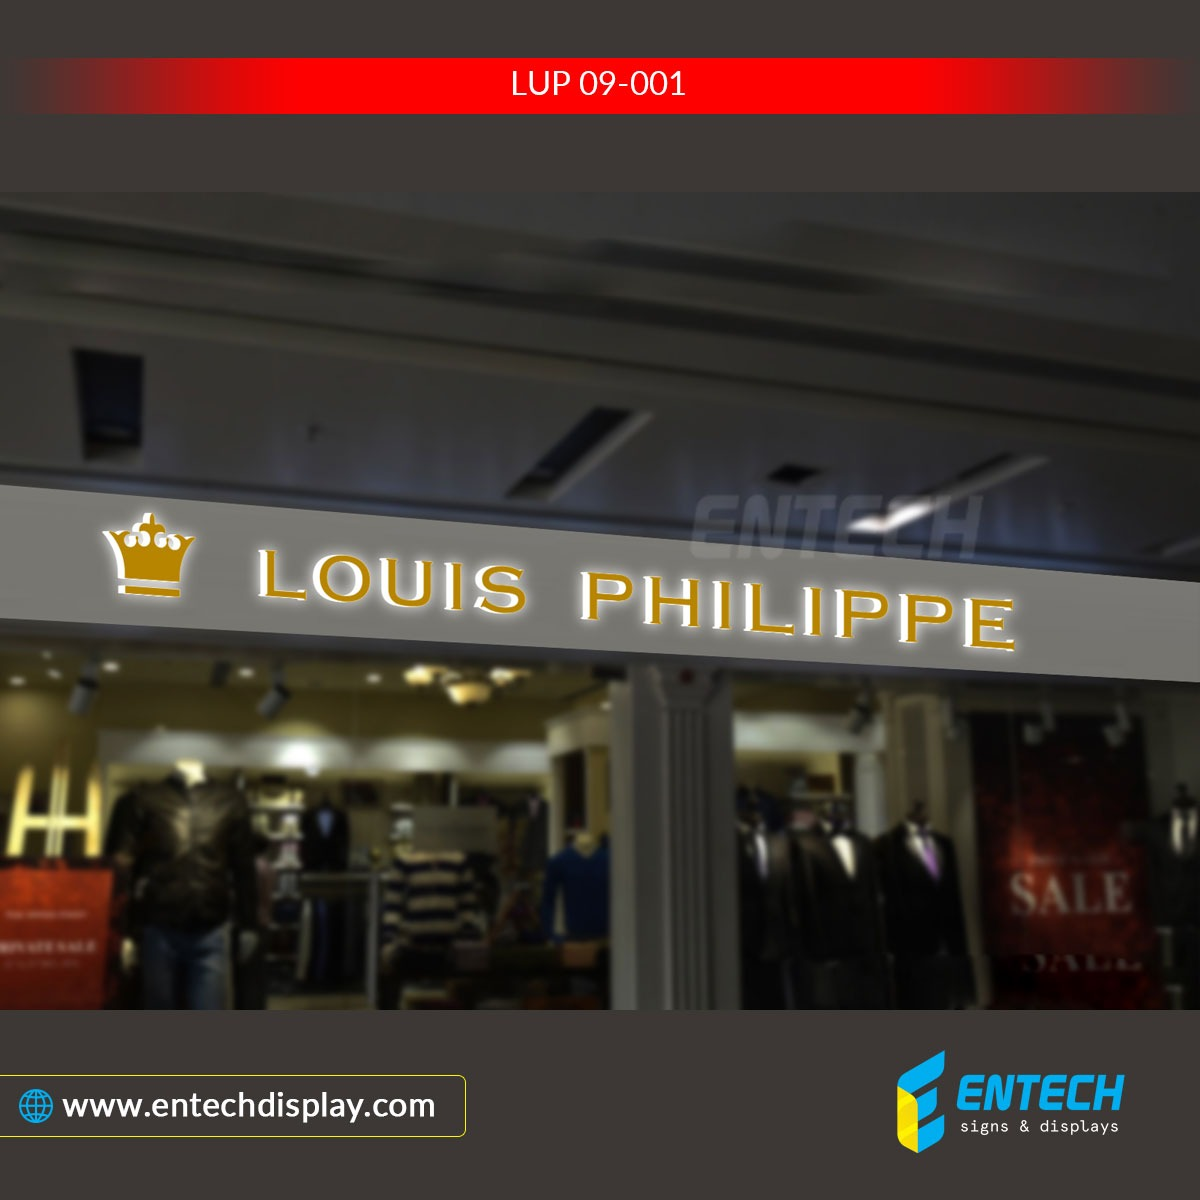 Louis Philippe storefron mini acrylic signs - mini acrylic signs & letters